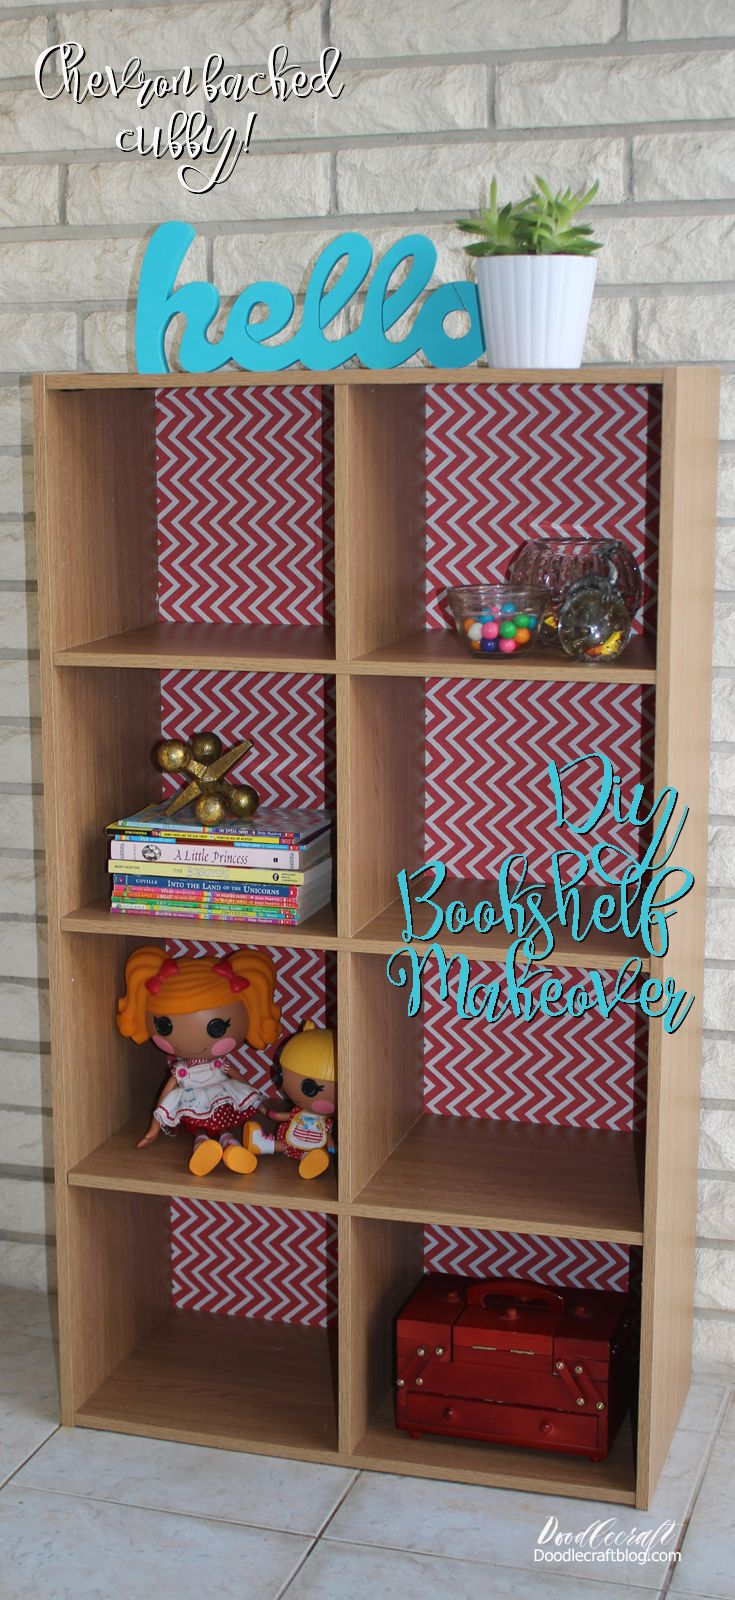 DIY Furniture Bookcase Makeover!  You've seen these cubby shelves everywhere, right!?  They are adorable and great for storage.